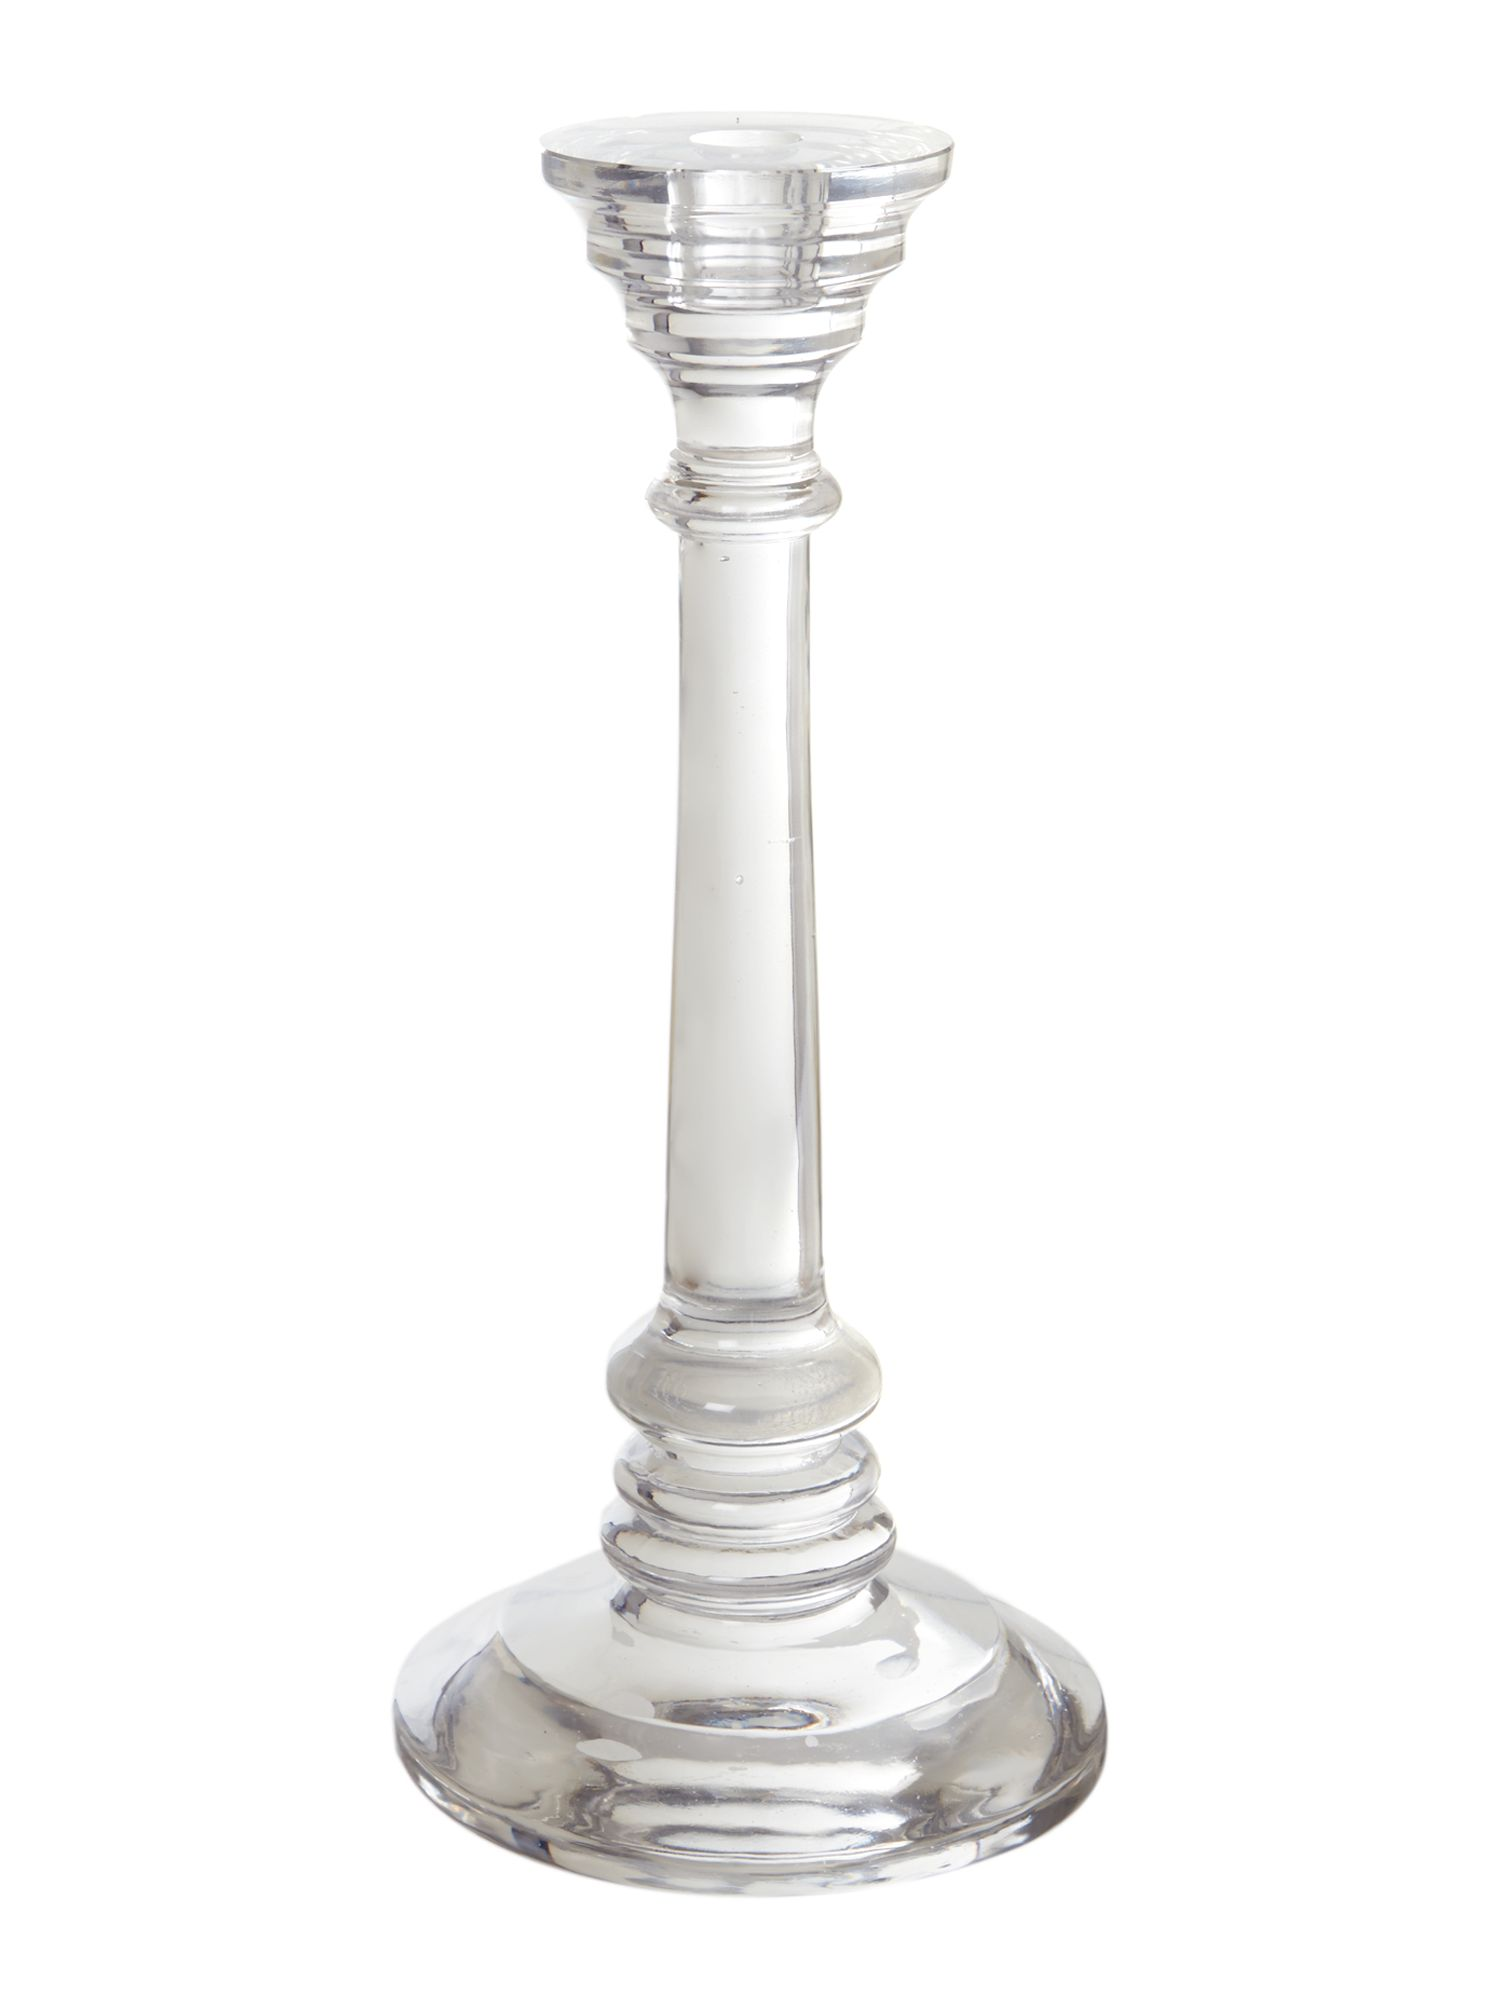 Linford candlestick height 38cm